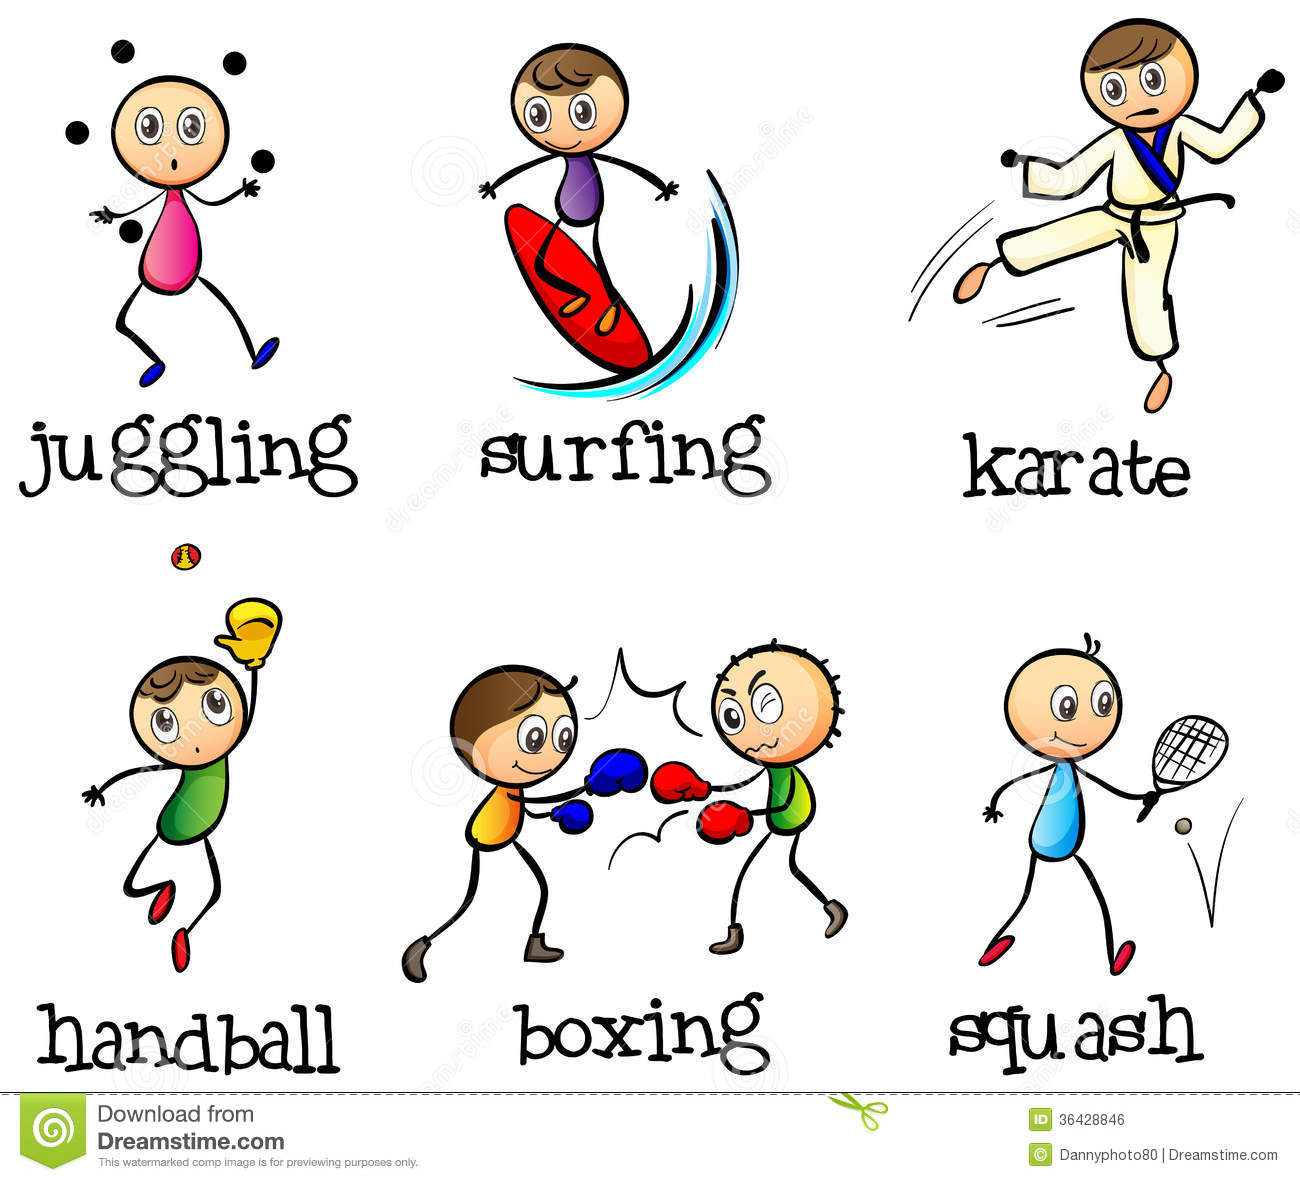 Six Different Sports Royalty Free Stock Image - Image: 36428846: www.dreamstime.com/royalty-free-stock-image-six-different-sports...